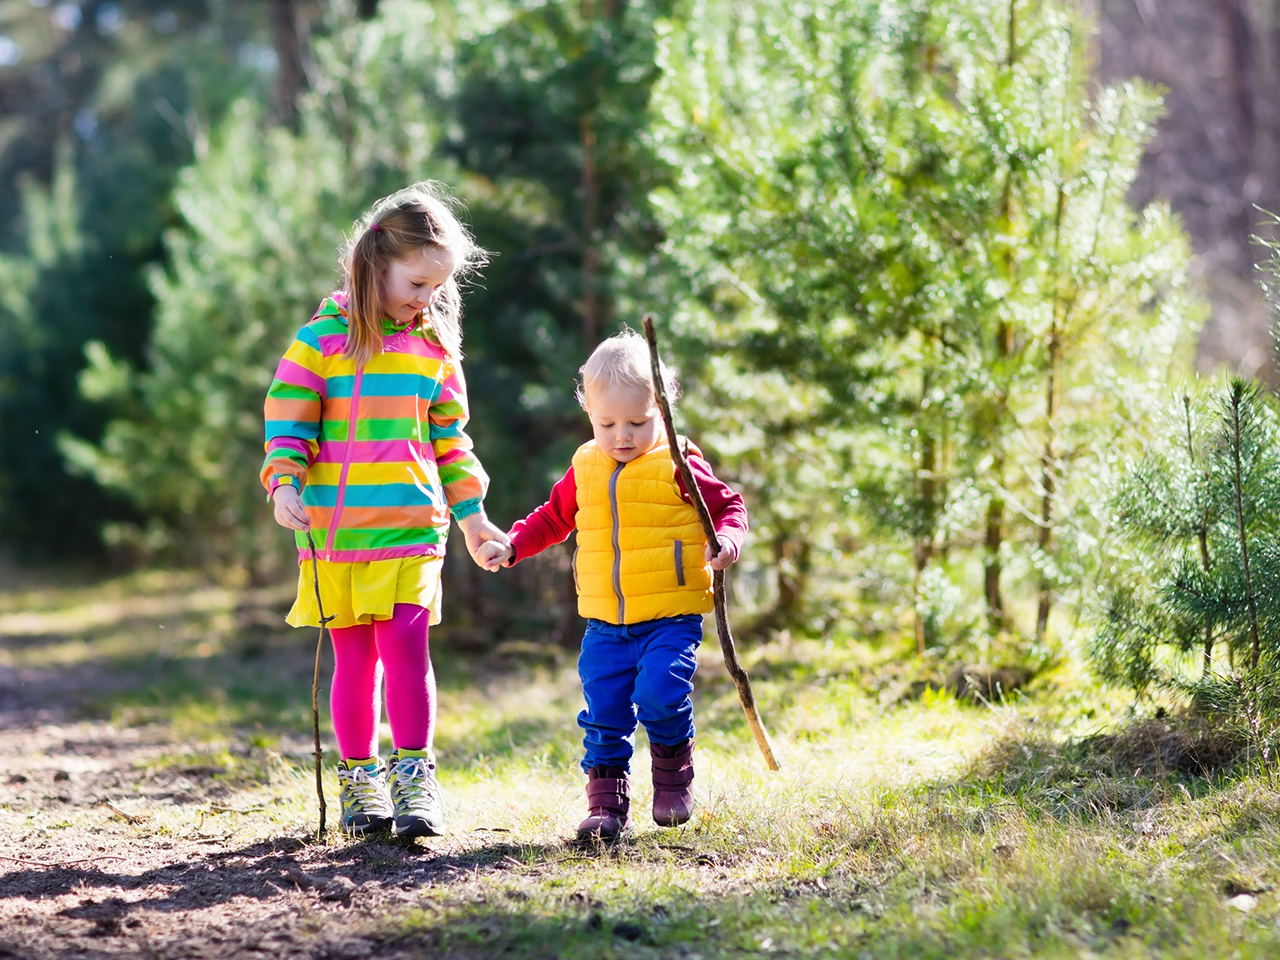 Siblings hike through down a wooded trail holding hands